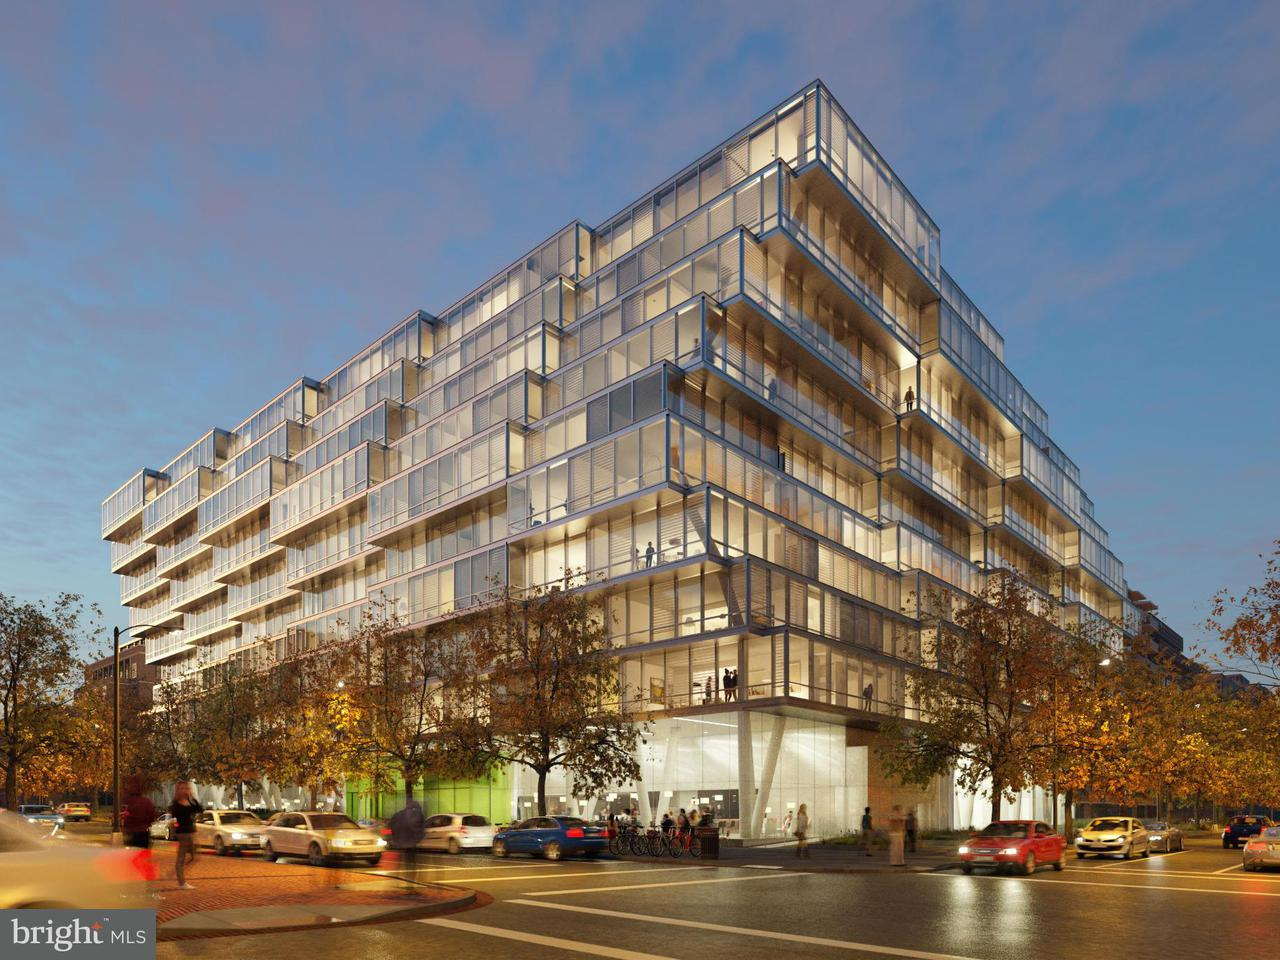 Condominium for Sale at 1111 24TH ST NW #10-D 1111 24TH ST NW #10-D Washington, District Of Columbia 20037 United States